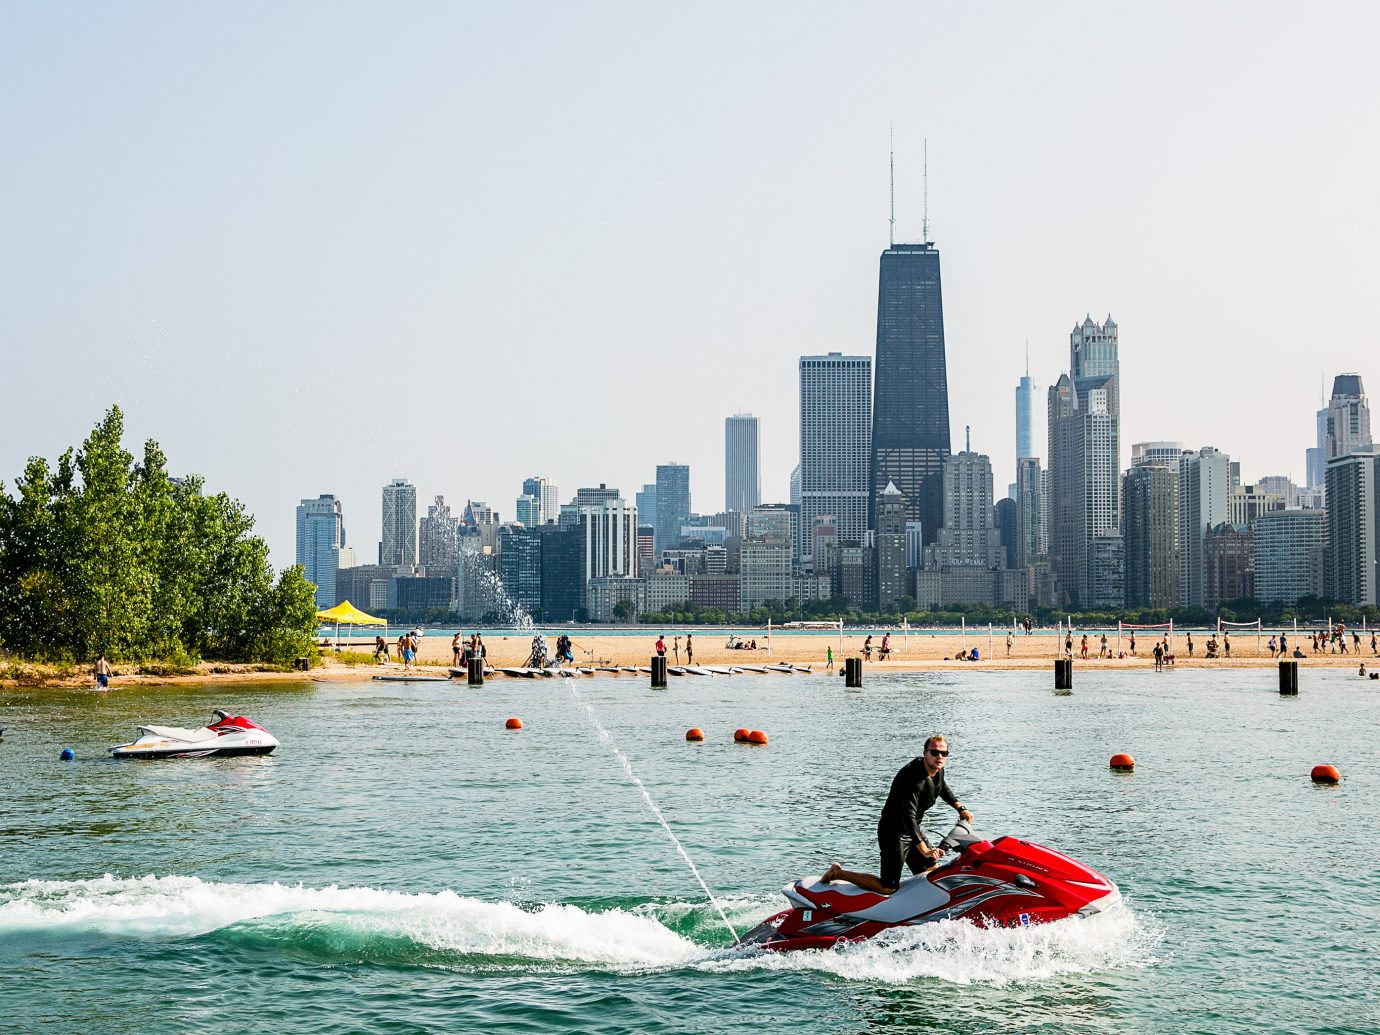 North Avenue Beach Trip Ideas water outdoor sky boating Boat vehicle Sport City Lake River skyline Sea watercraft kayak bay day